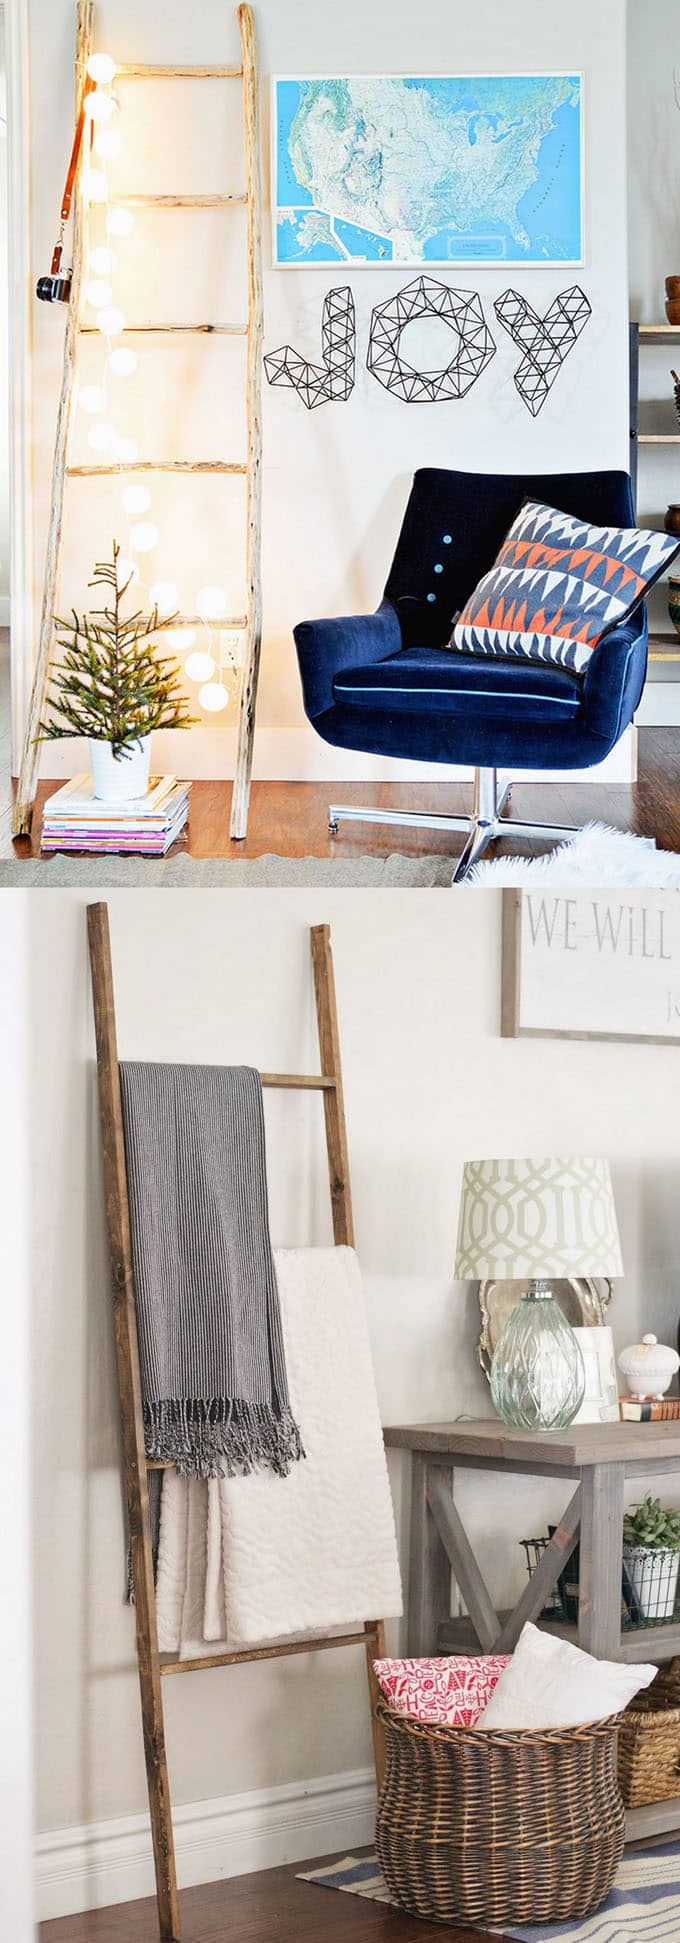 DIY blanket ladders in modern farmhouse style home decor